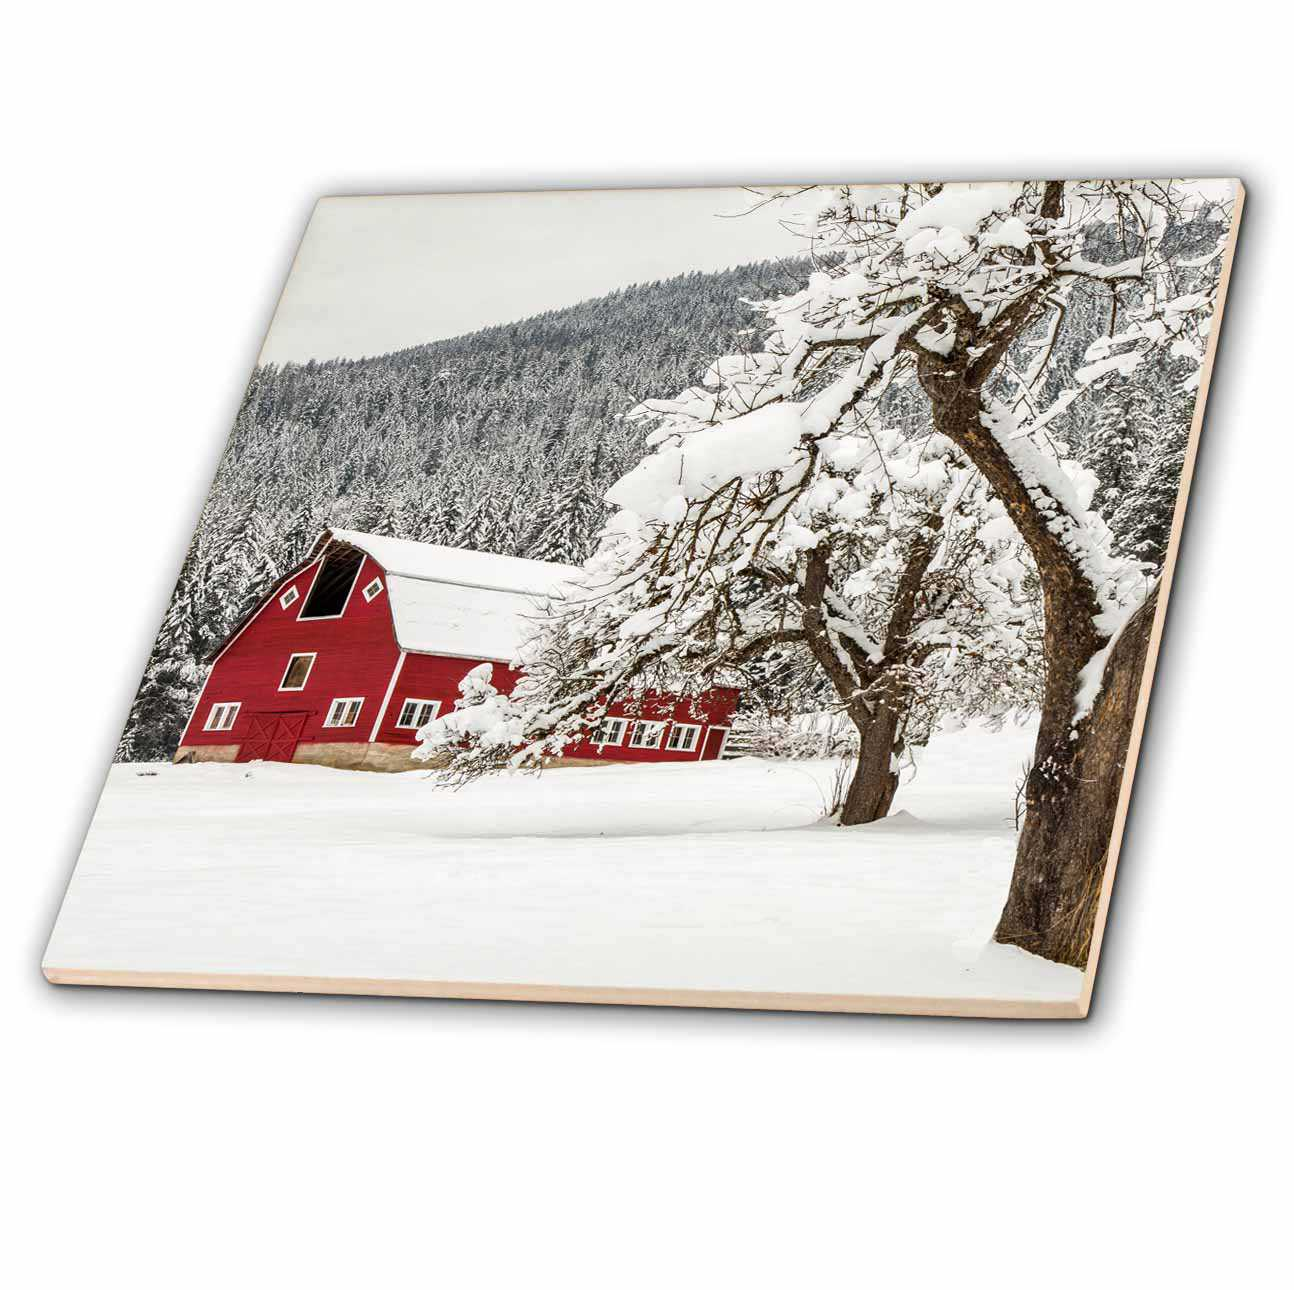 3dRose Fresh snow on red barn near Salmo, British Columbia, Canada. - Ceramic Tile, 8-inch